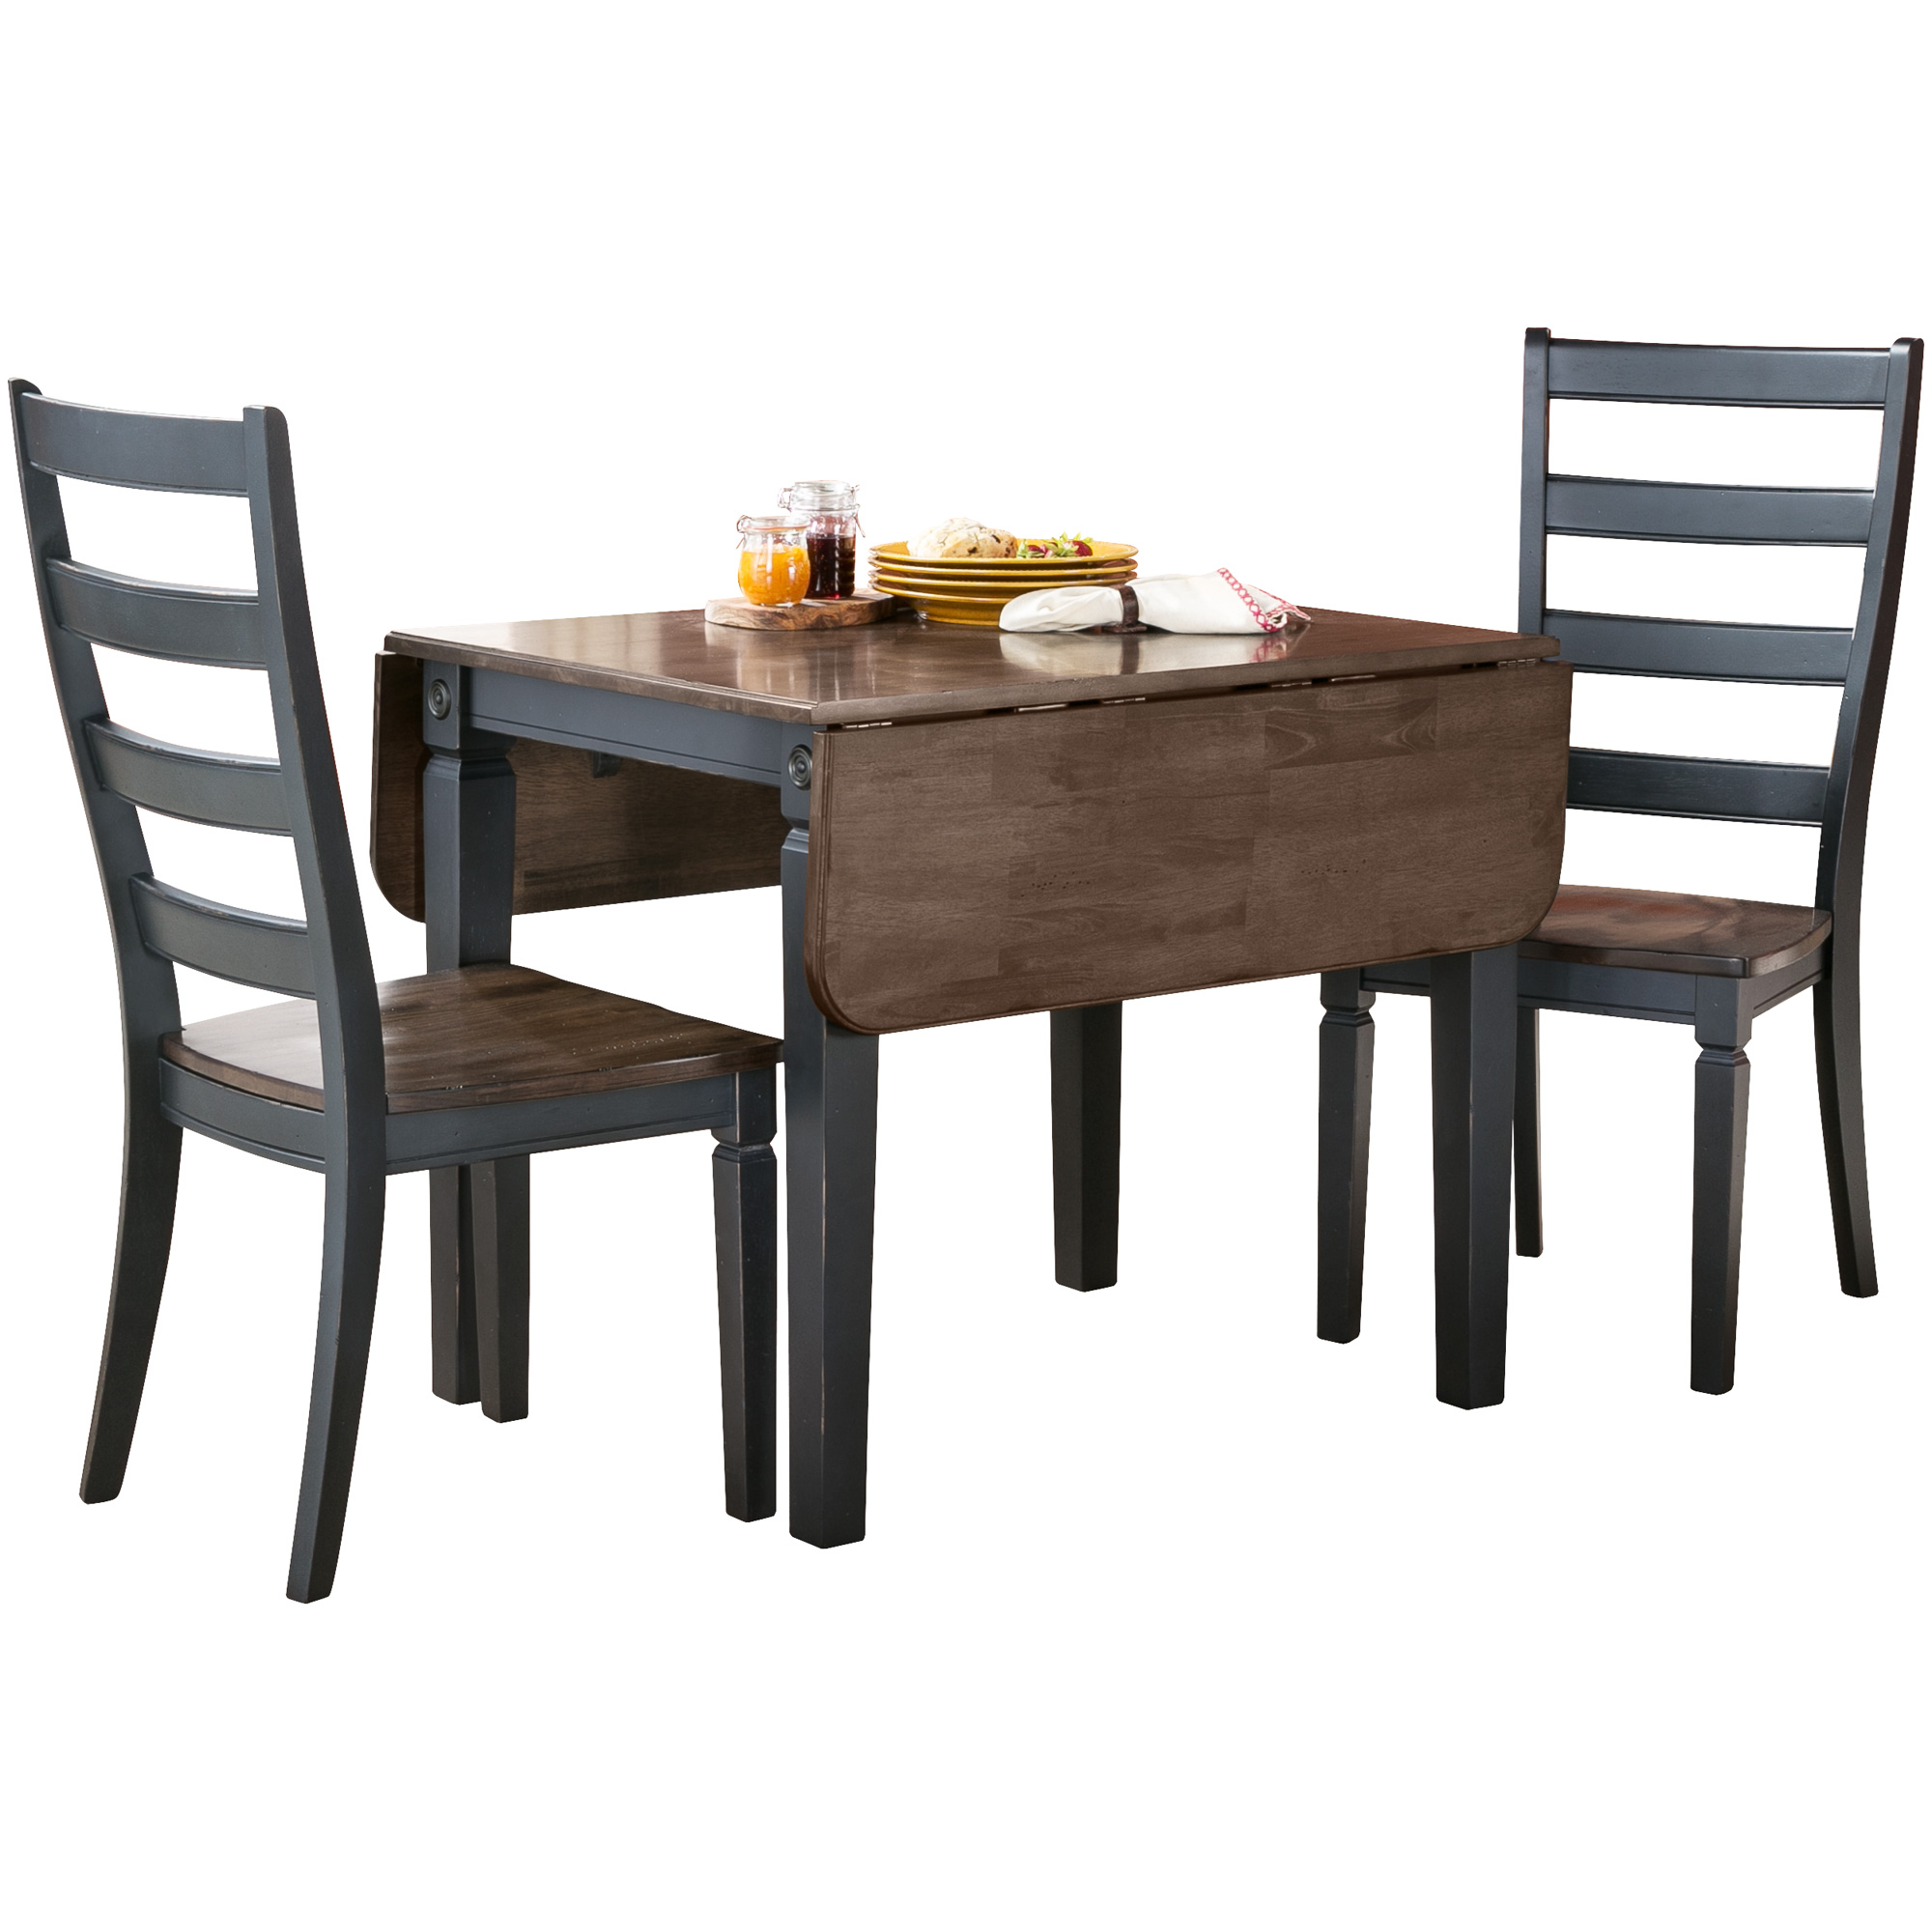 Intercon | Glennwood 3 Piece Black Dining Set